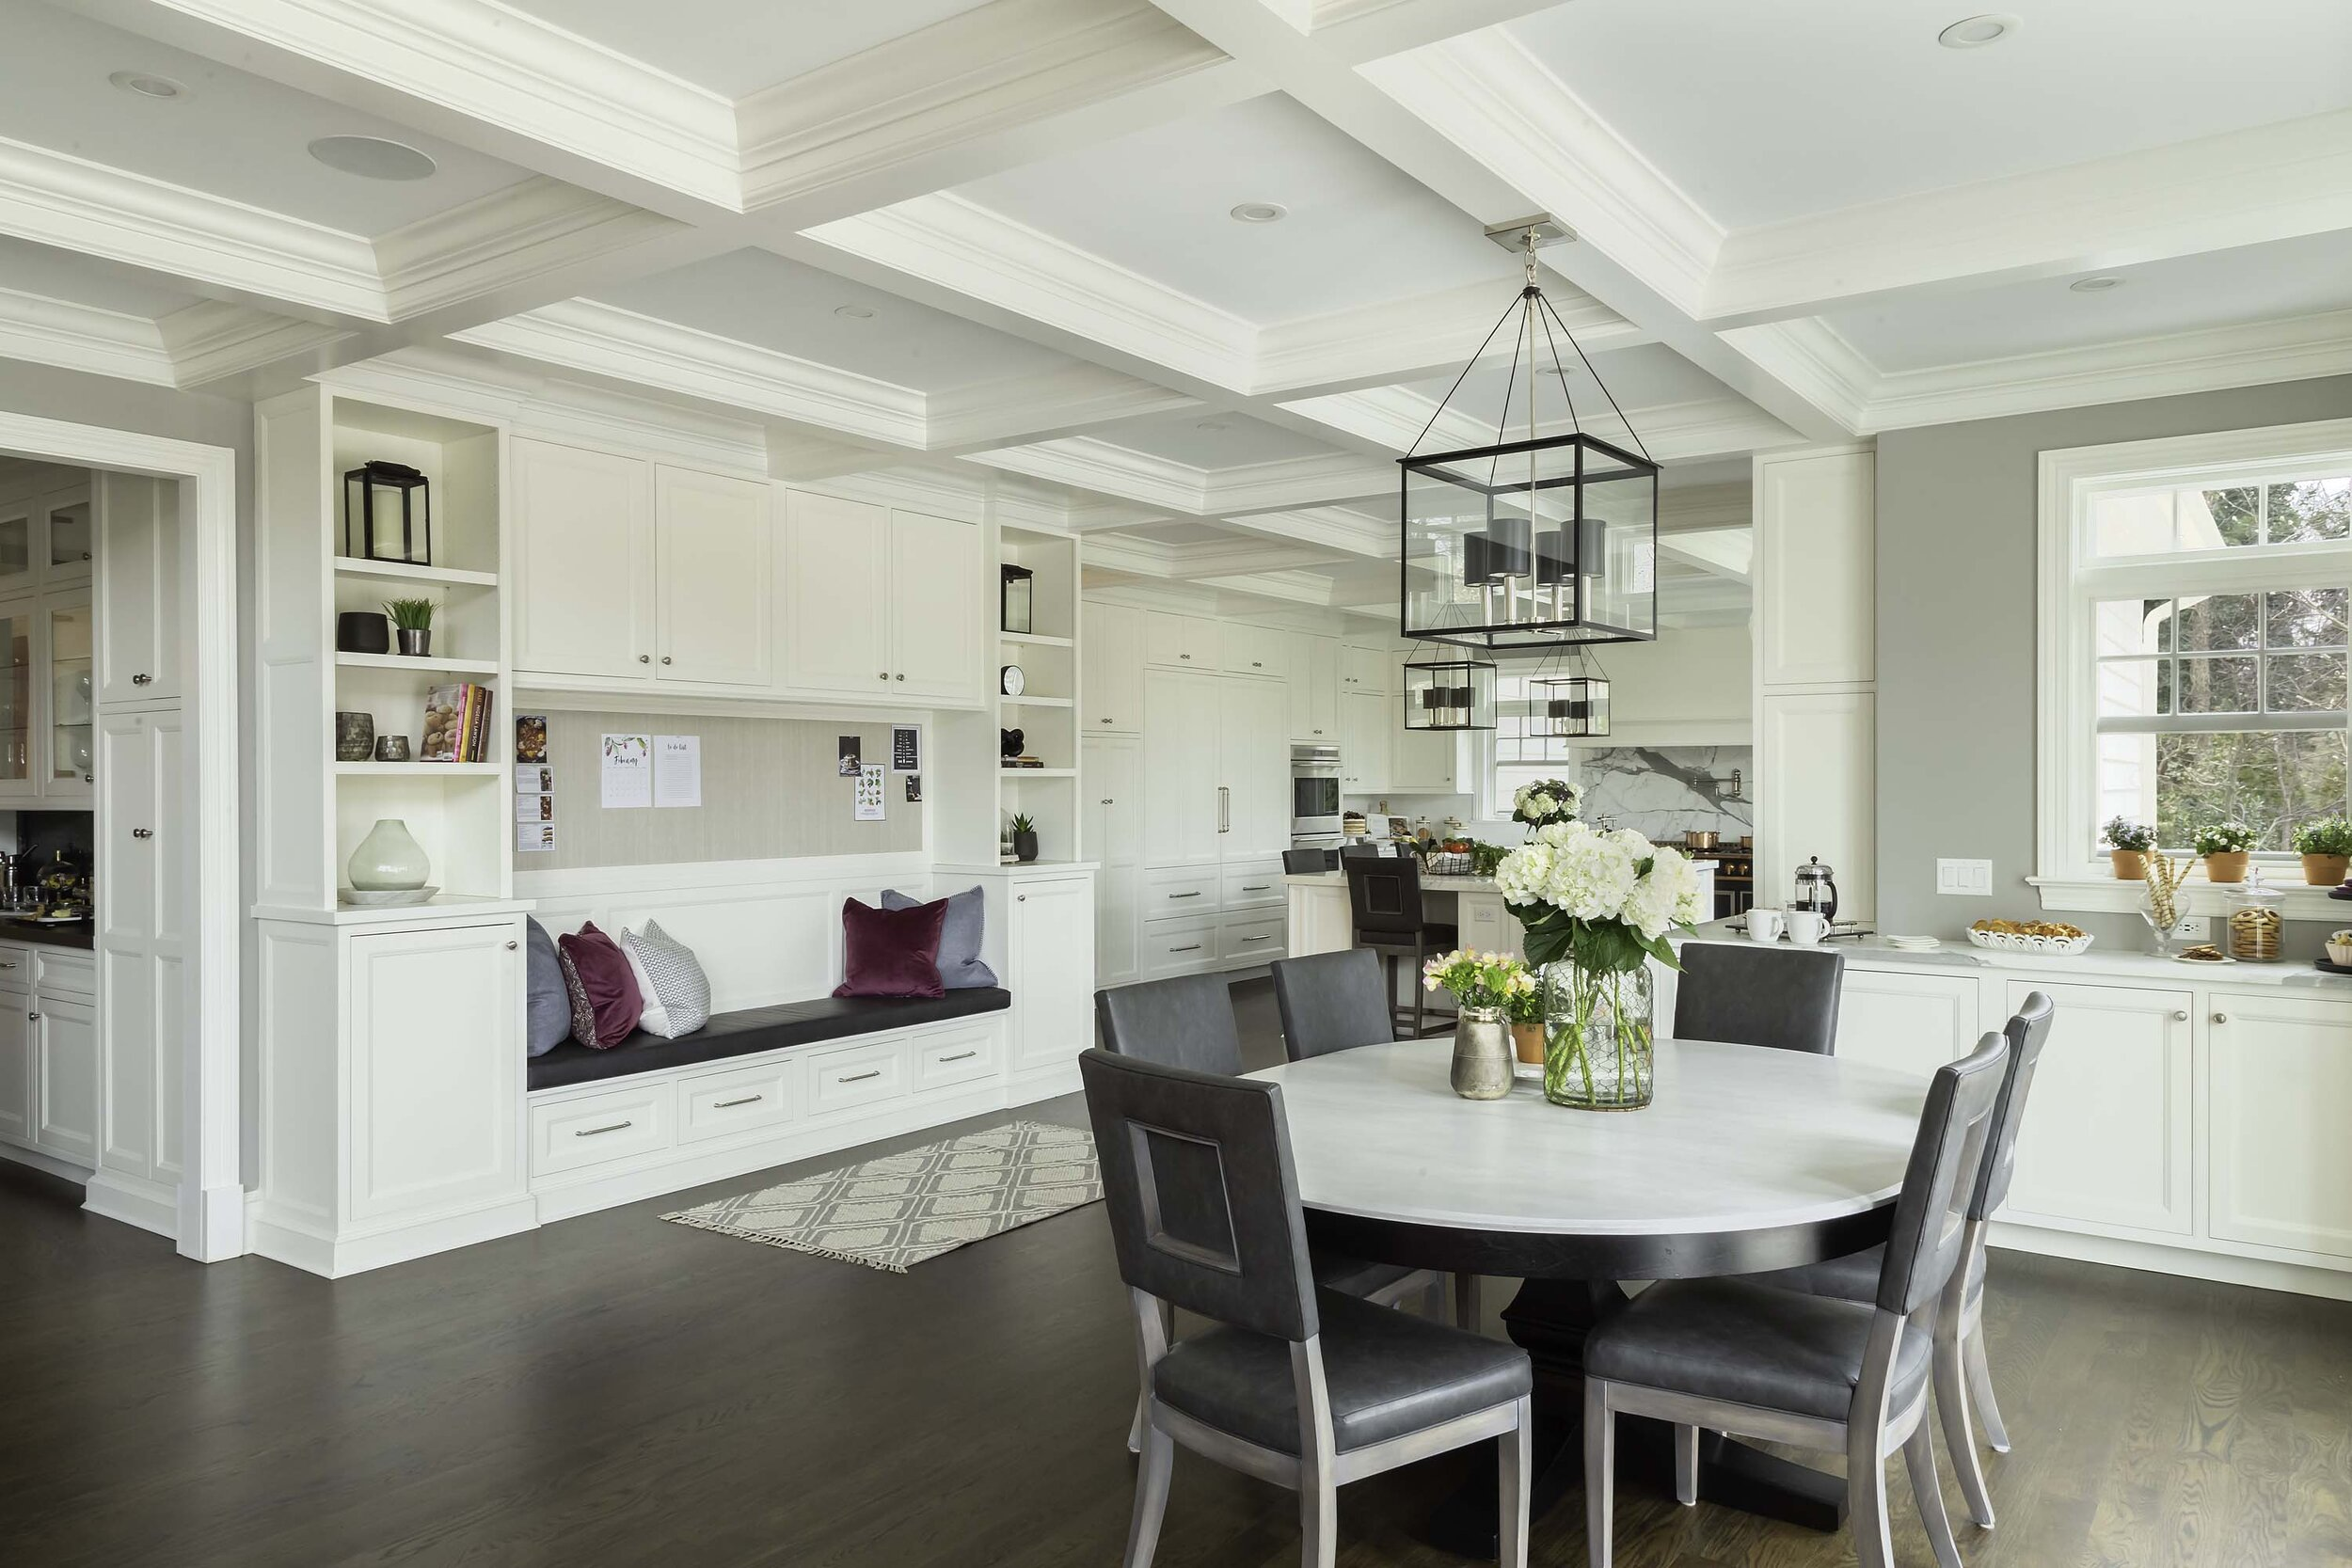 Transitional white kitchen with breakfast area and banquette storage